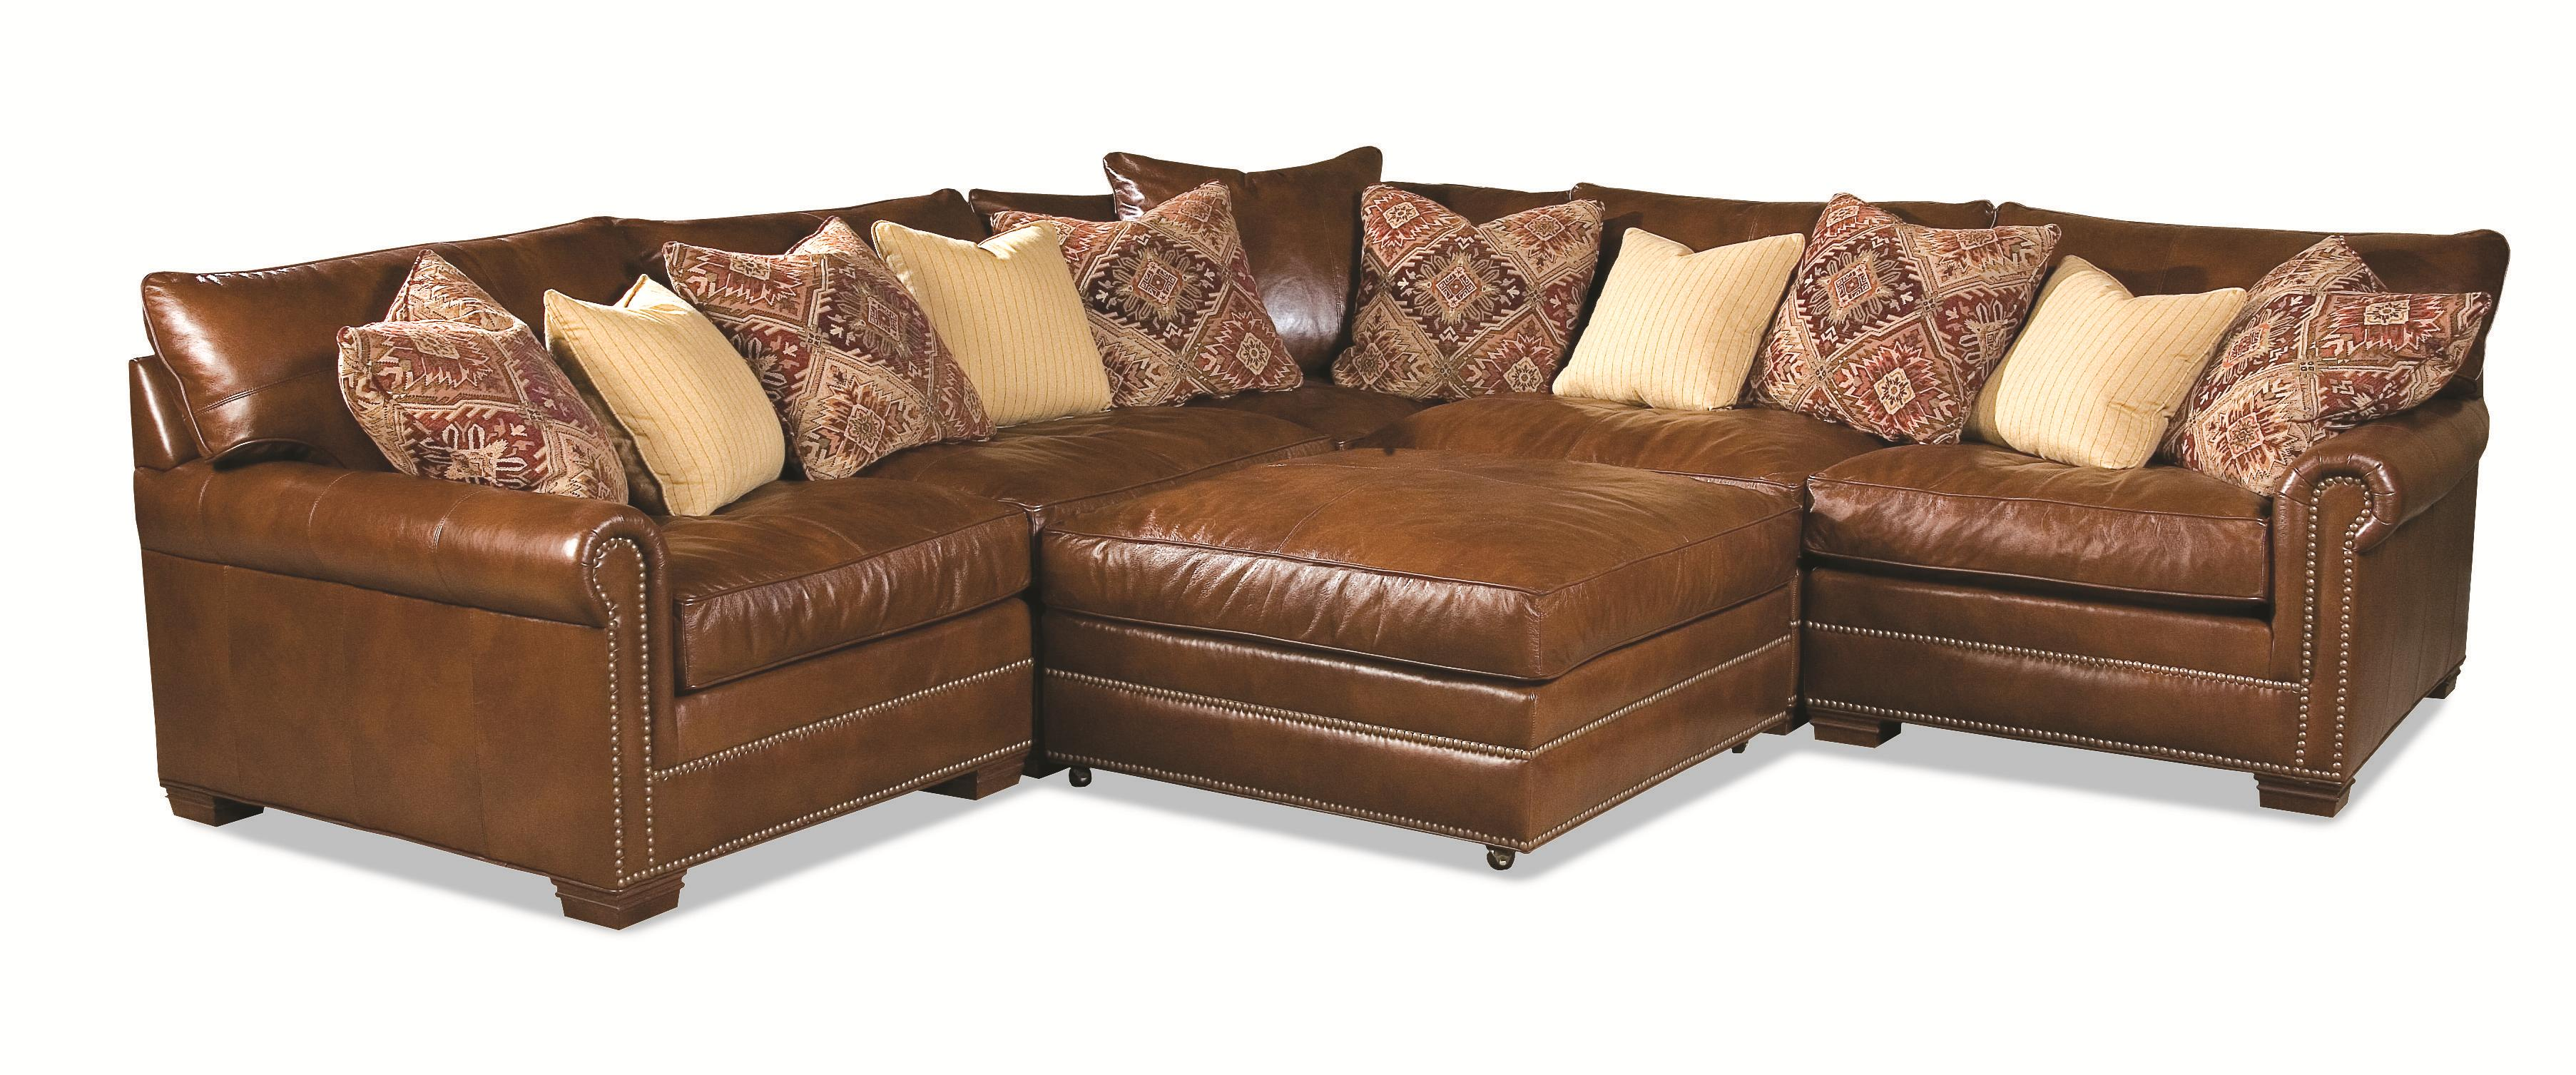 Huntington House 7107 Sectional - Item Number: 7107-53+2x51+31+52+55